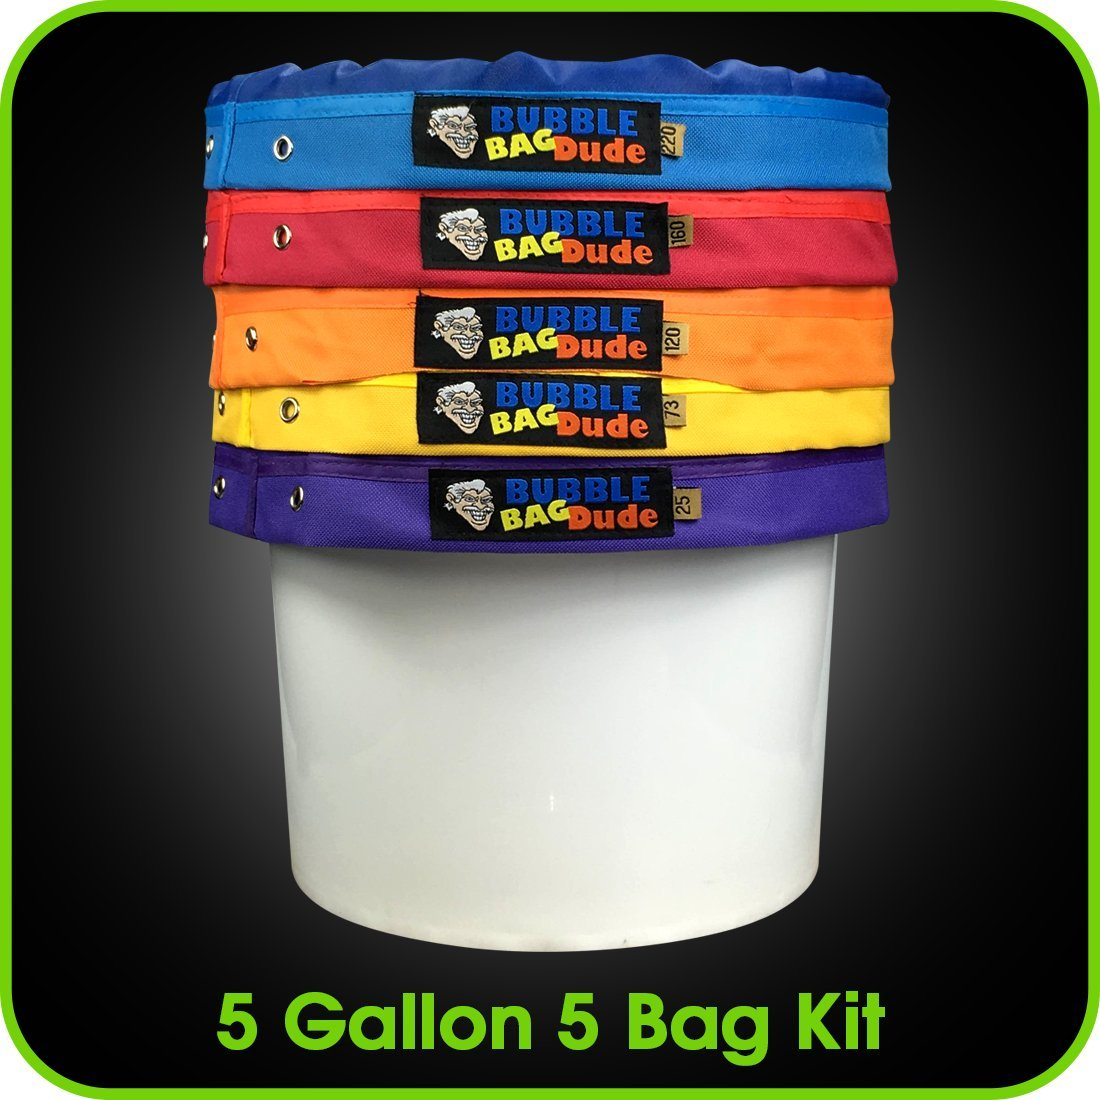 BUBBLEBAGDUDE Bubble Bags 5 Gallon 5 Bag Set - Herbal Ice Bubble Bag Essence Extractor Kit - Comes with Pressing Screen and Storage Bag by BUBBLEBAGDUDE